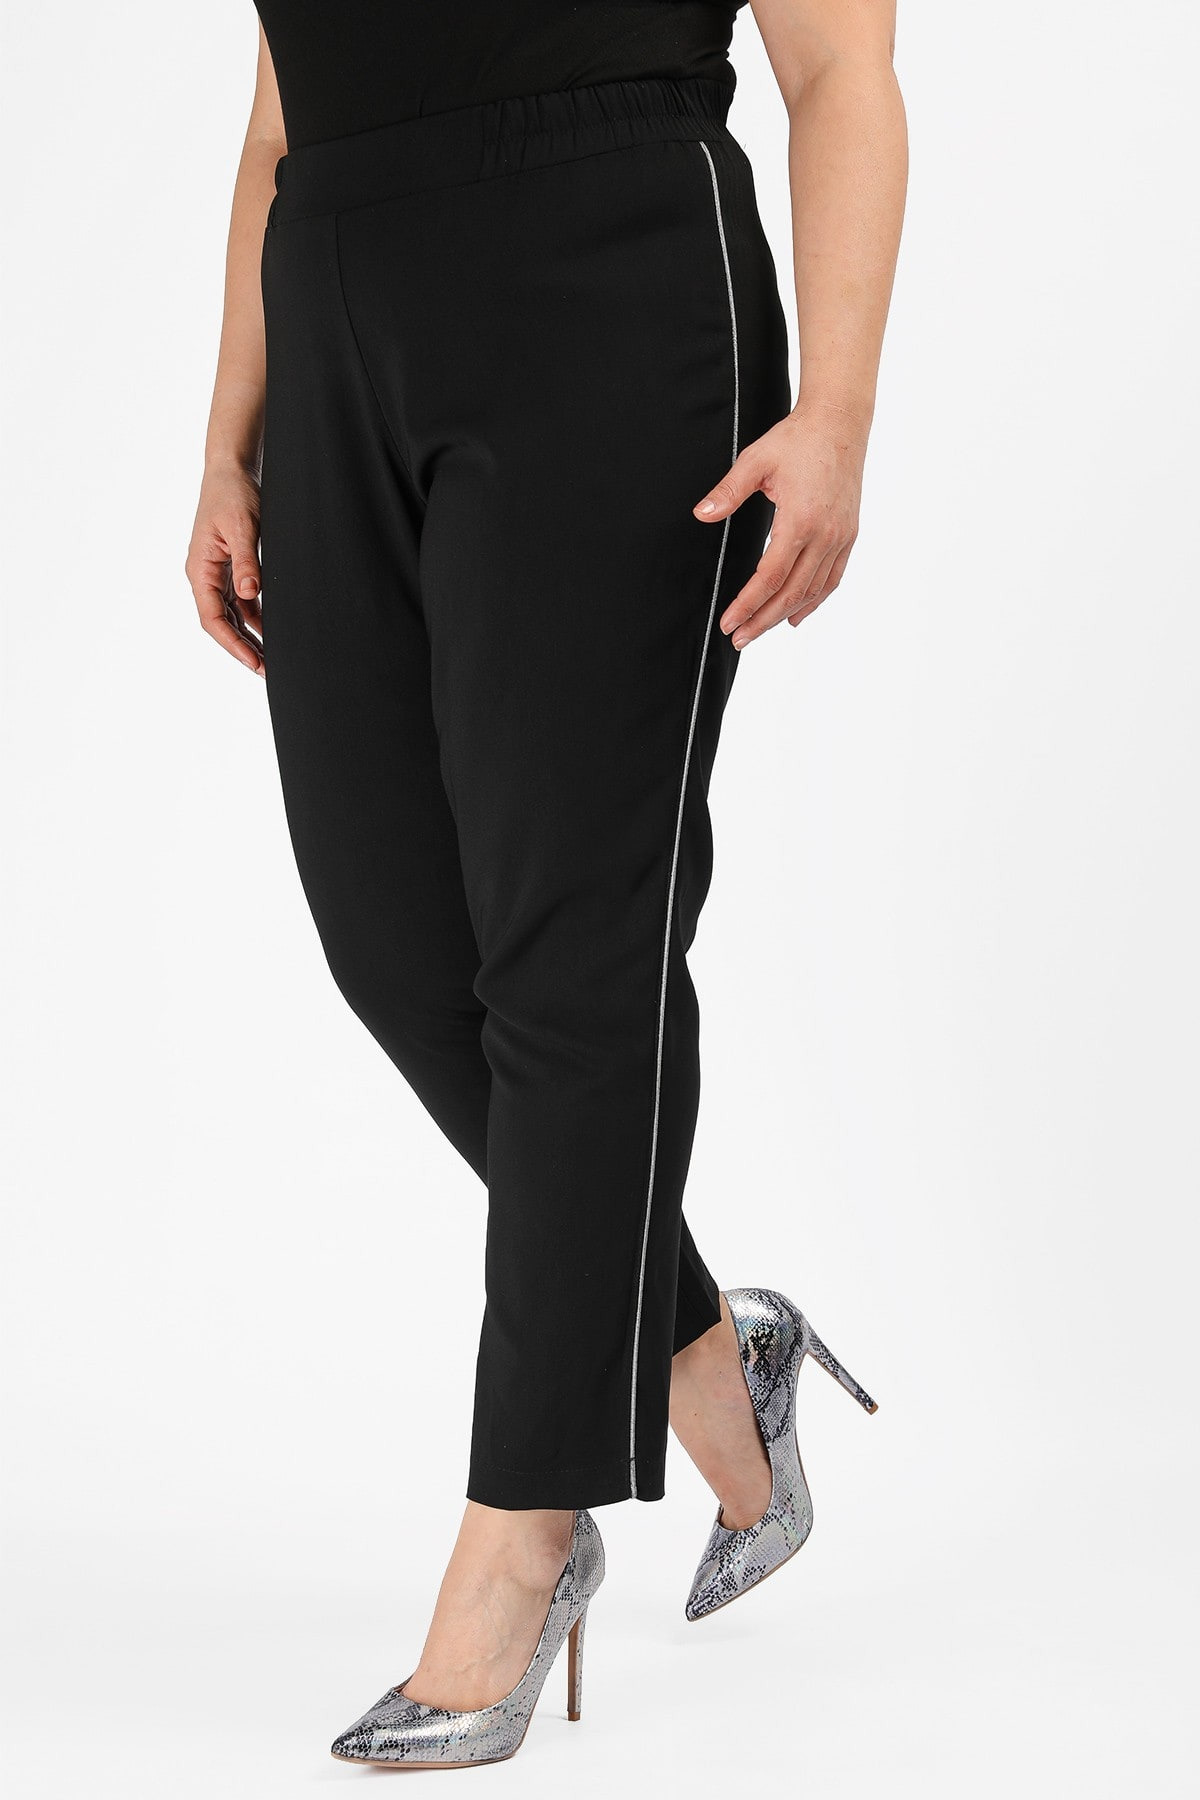 Tapper trousers with silver stripe on the side